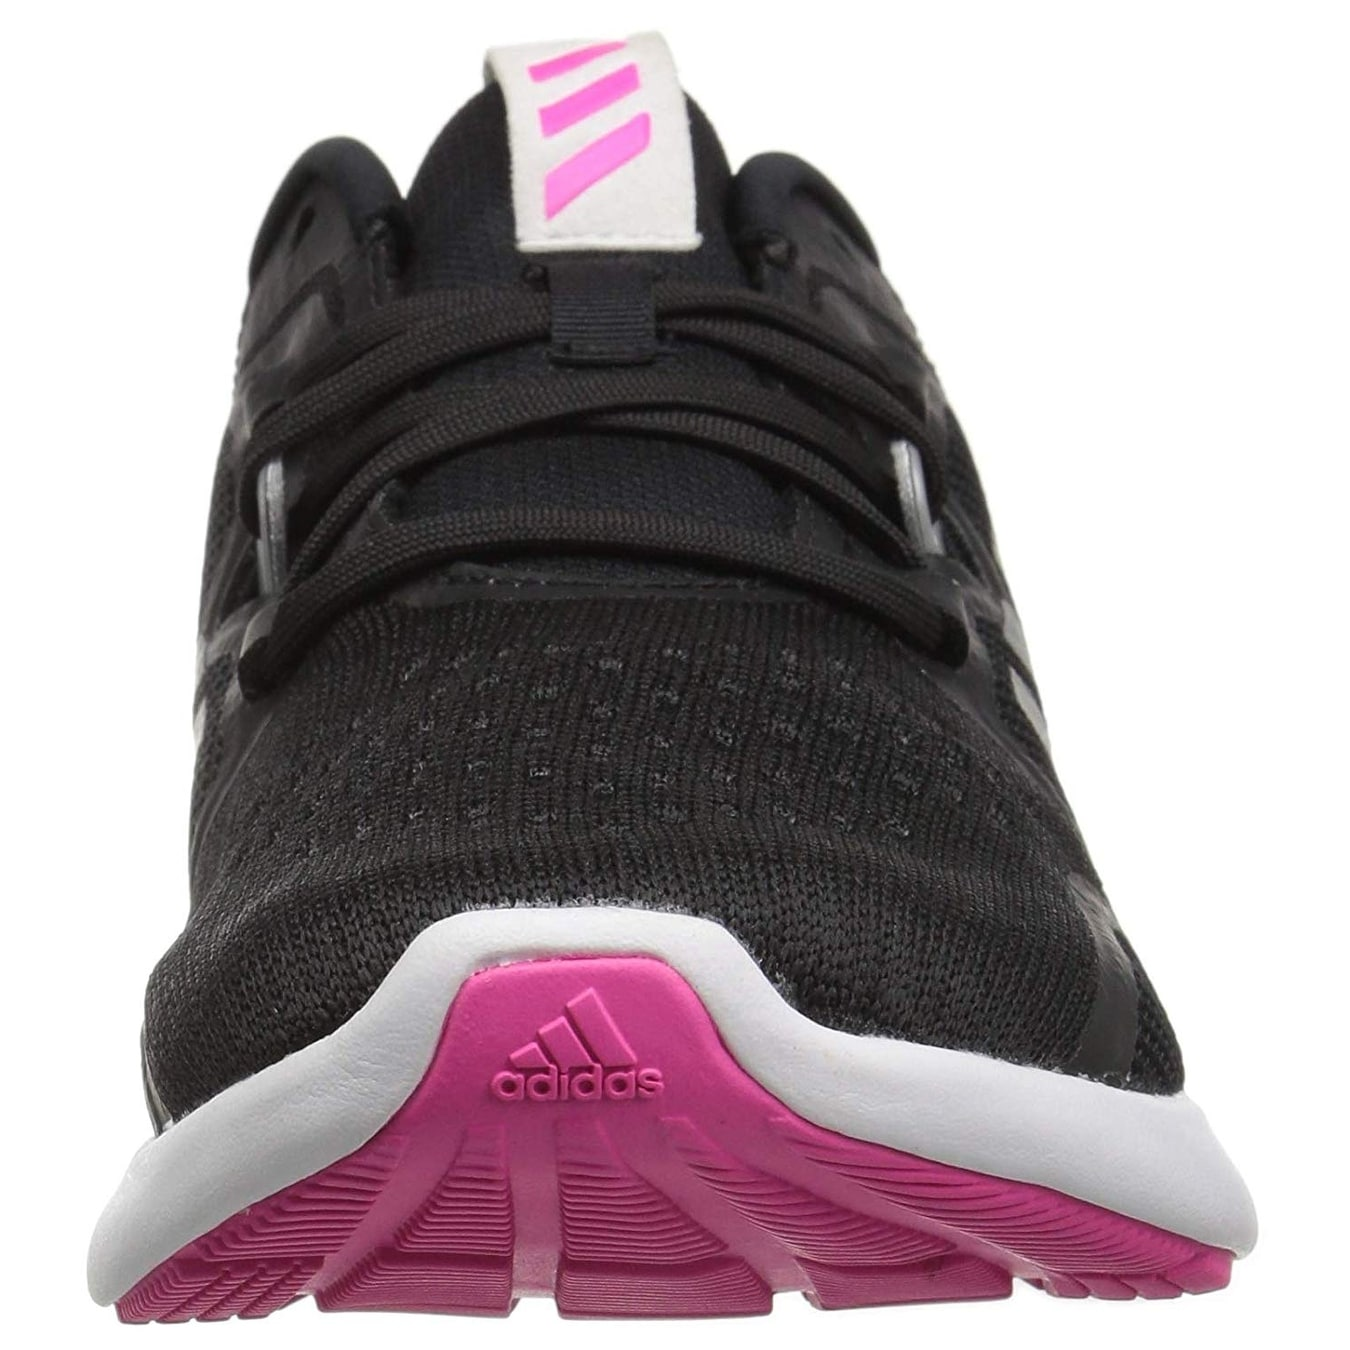 f974133fa1ae3 Shop adidas Edgebounce Women s Running Shoe - Free Shipping Today -  Overstock - 26291428